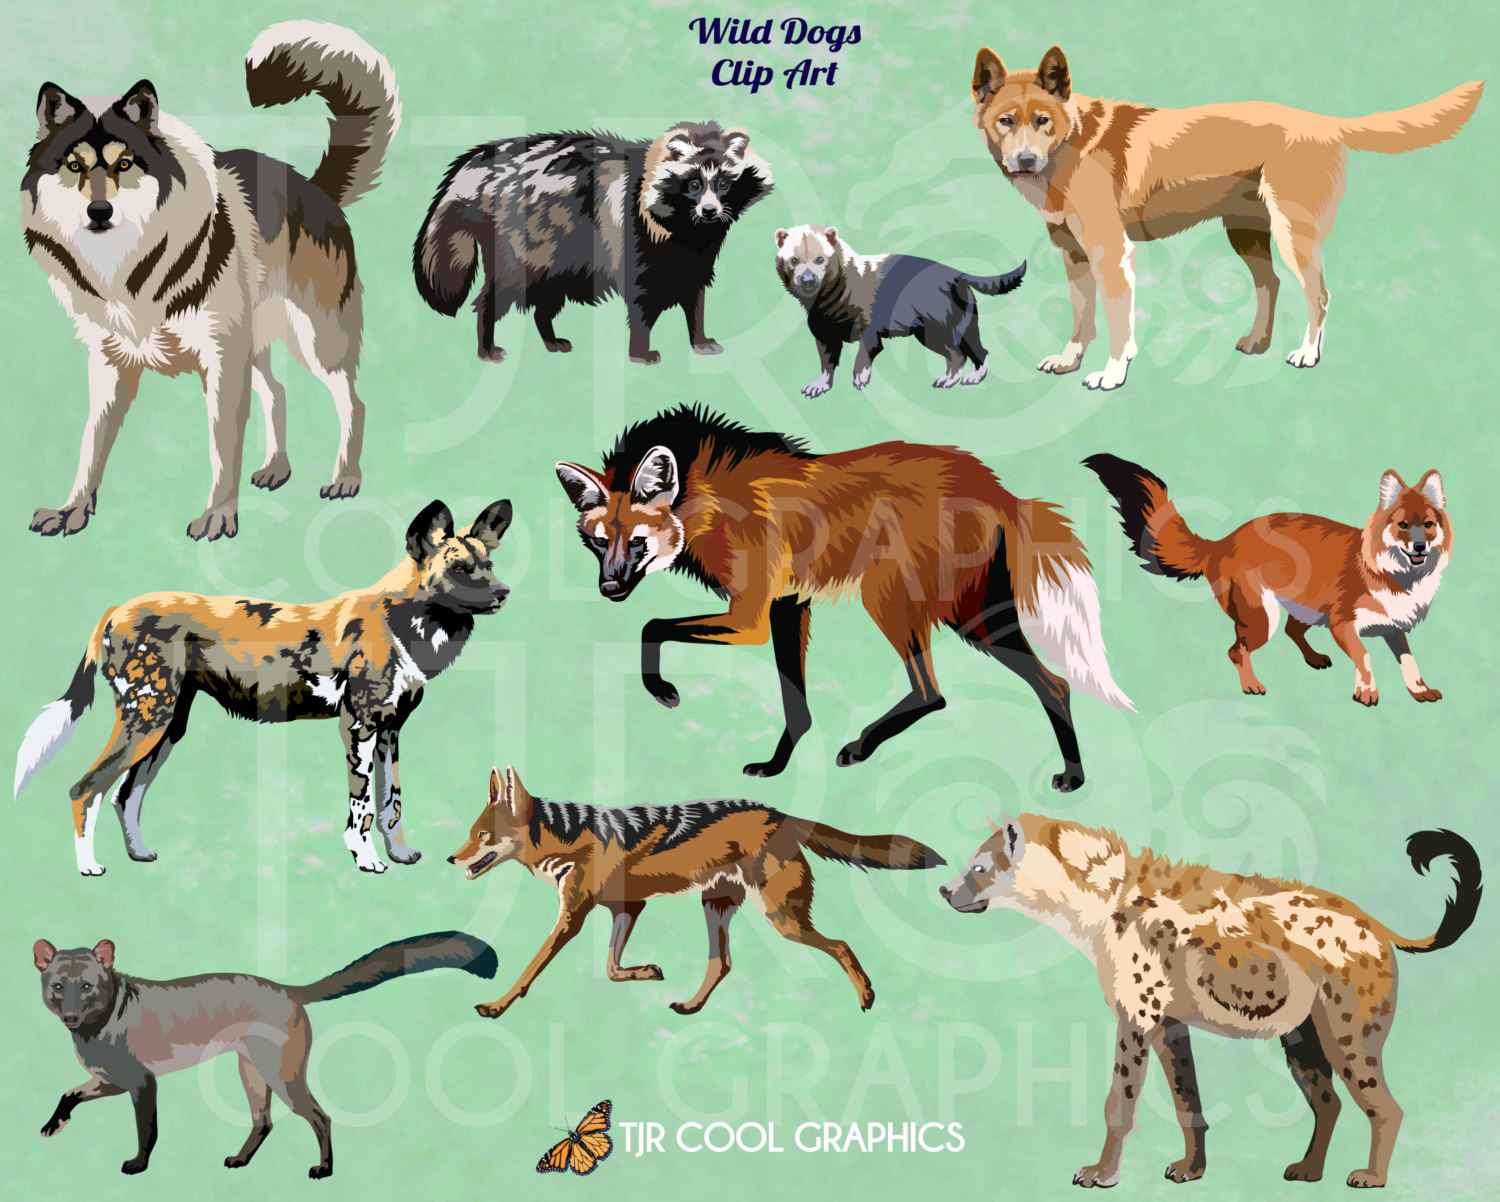 Wild Dog clipart #15, Download drawings